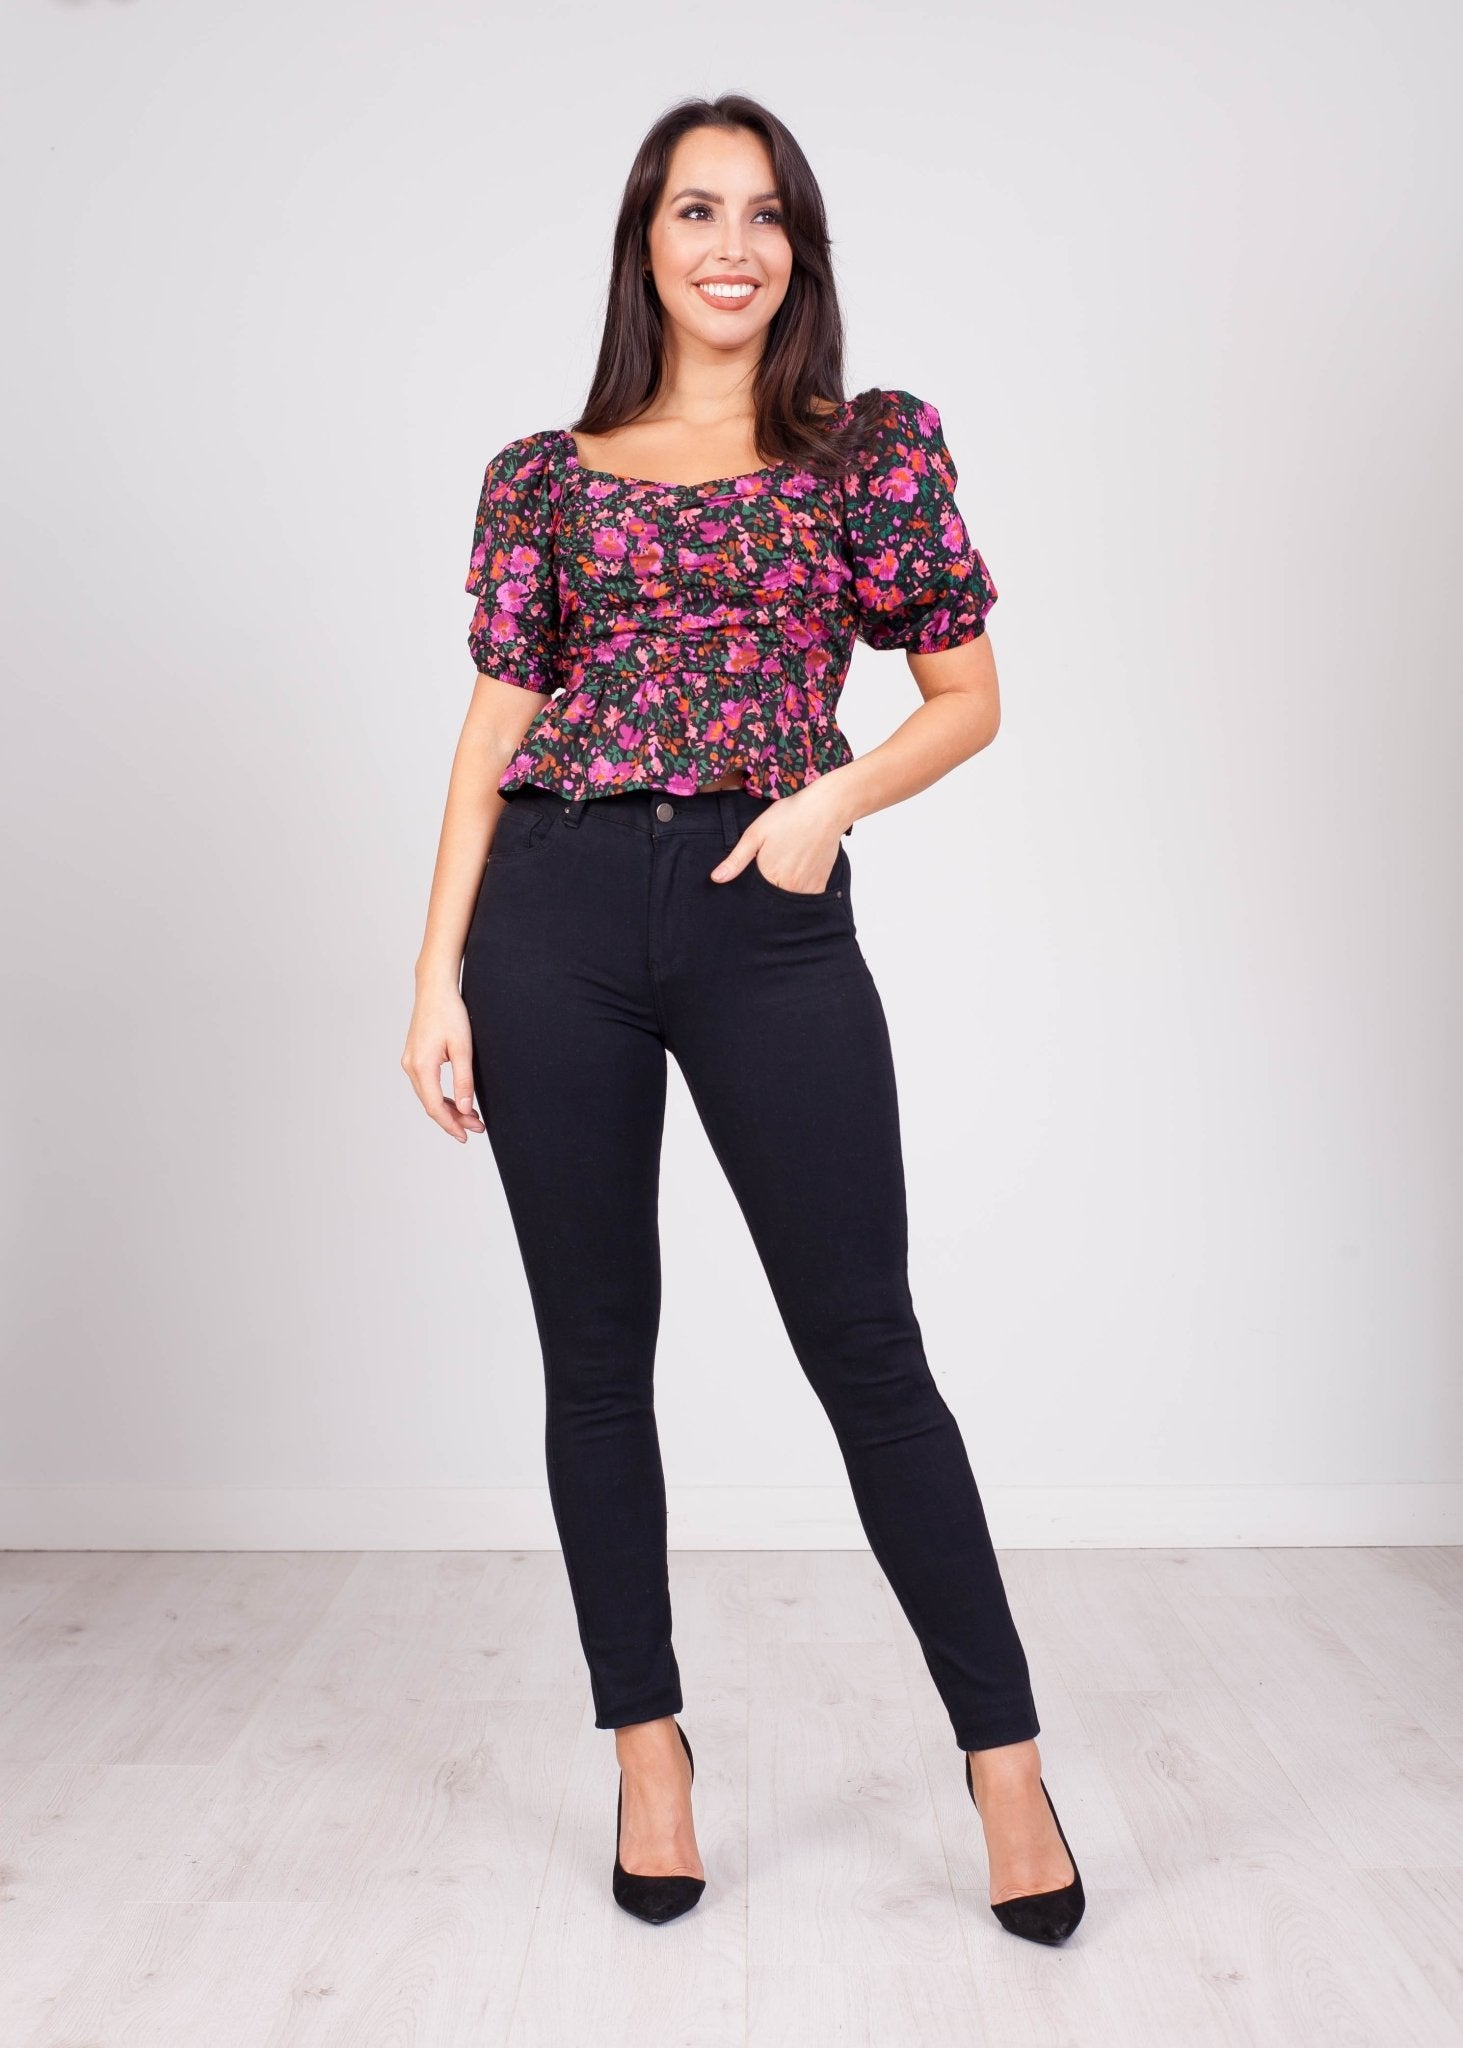 Fifi Floral Bardot Top - The Walk in Wardrobe